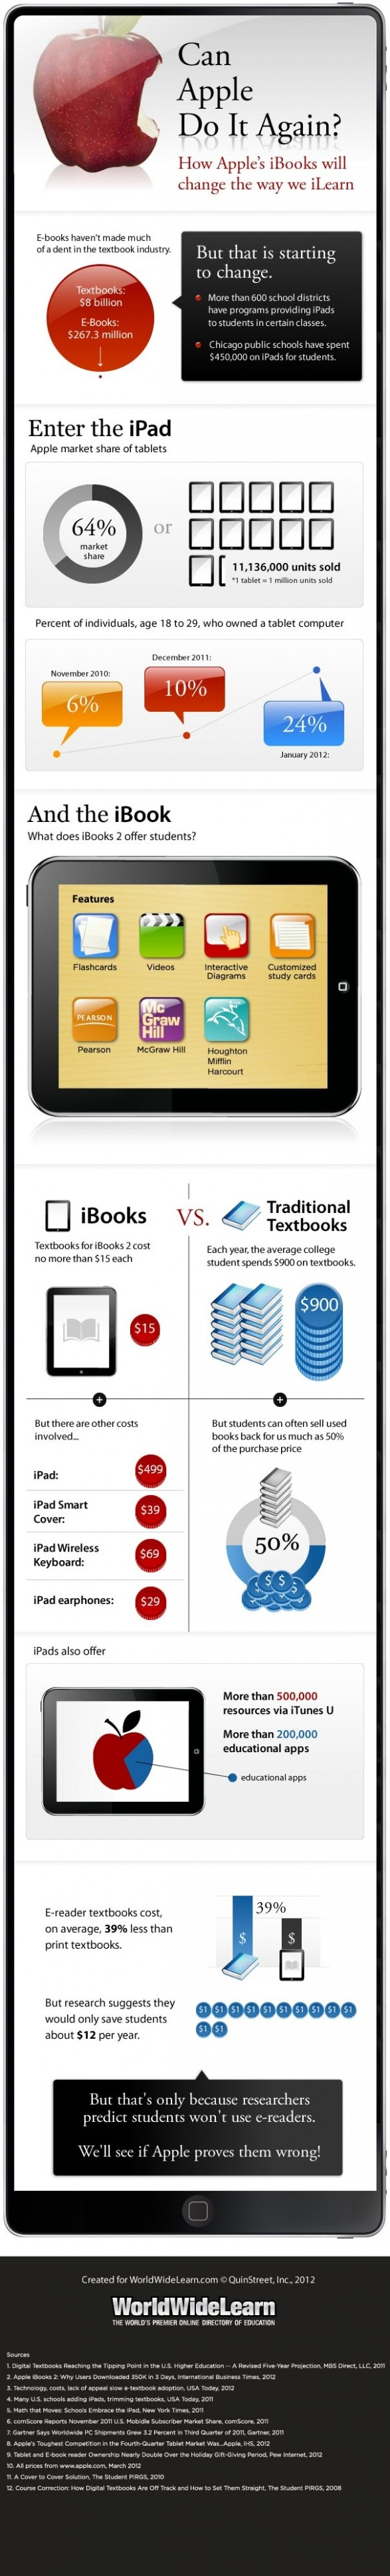 Can Apple Do It Again? How Apple's iBooks Will Change The Way We iLearn?